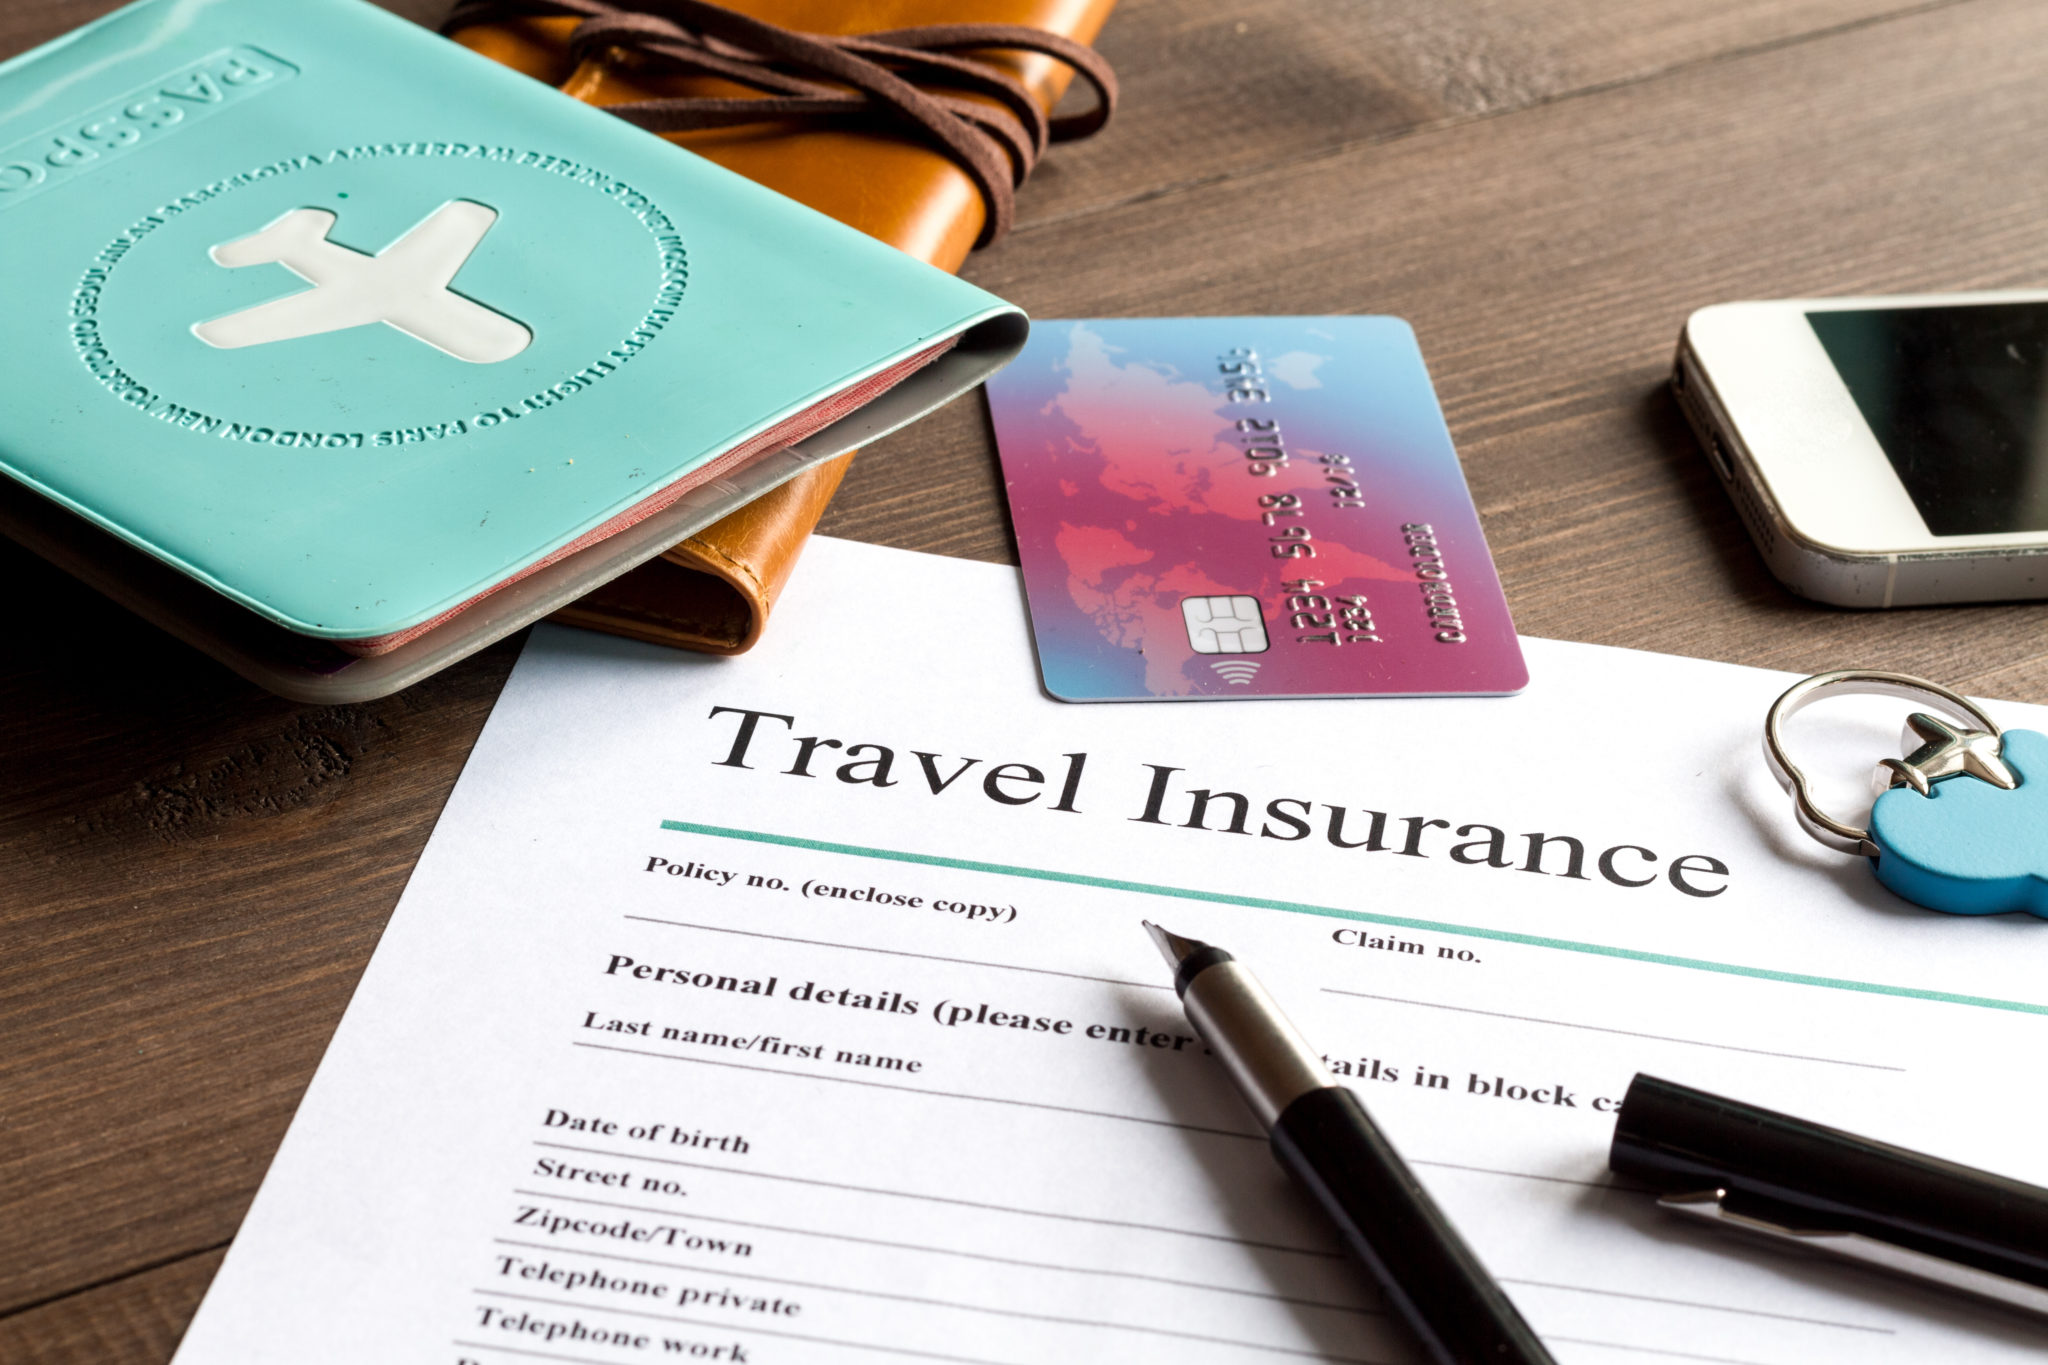 viaggio, passaport, passaporto, travel insurance, stylo,